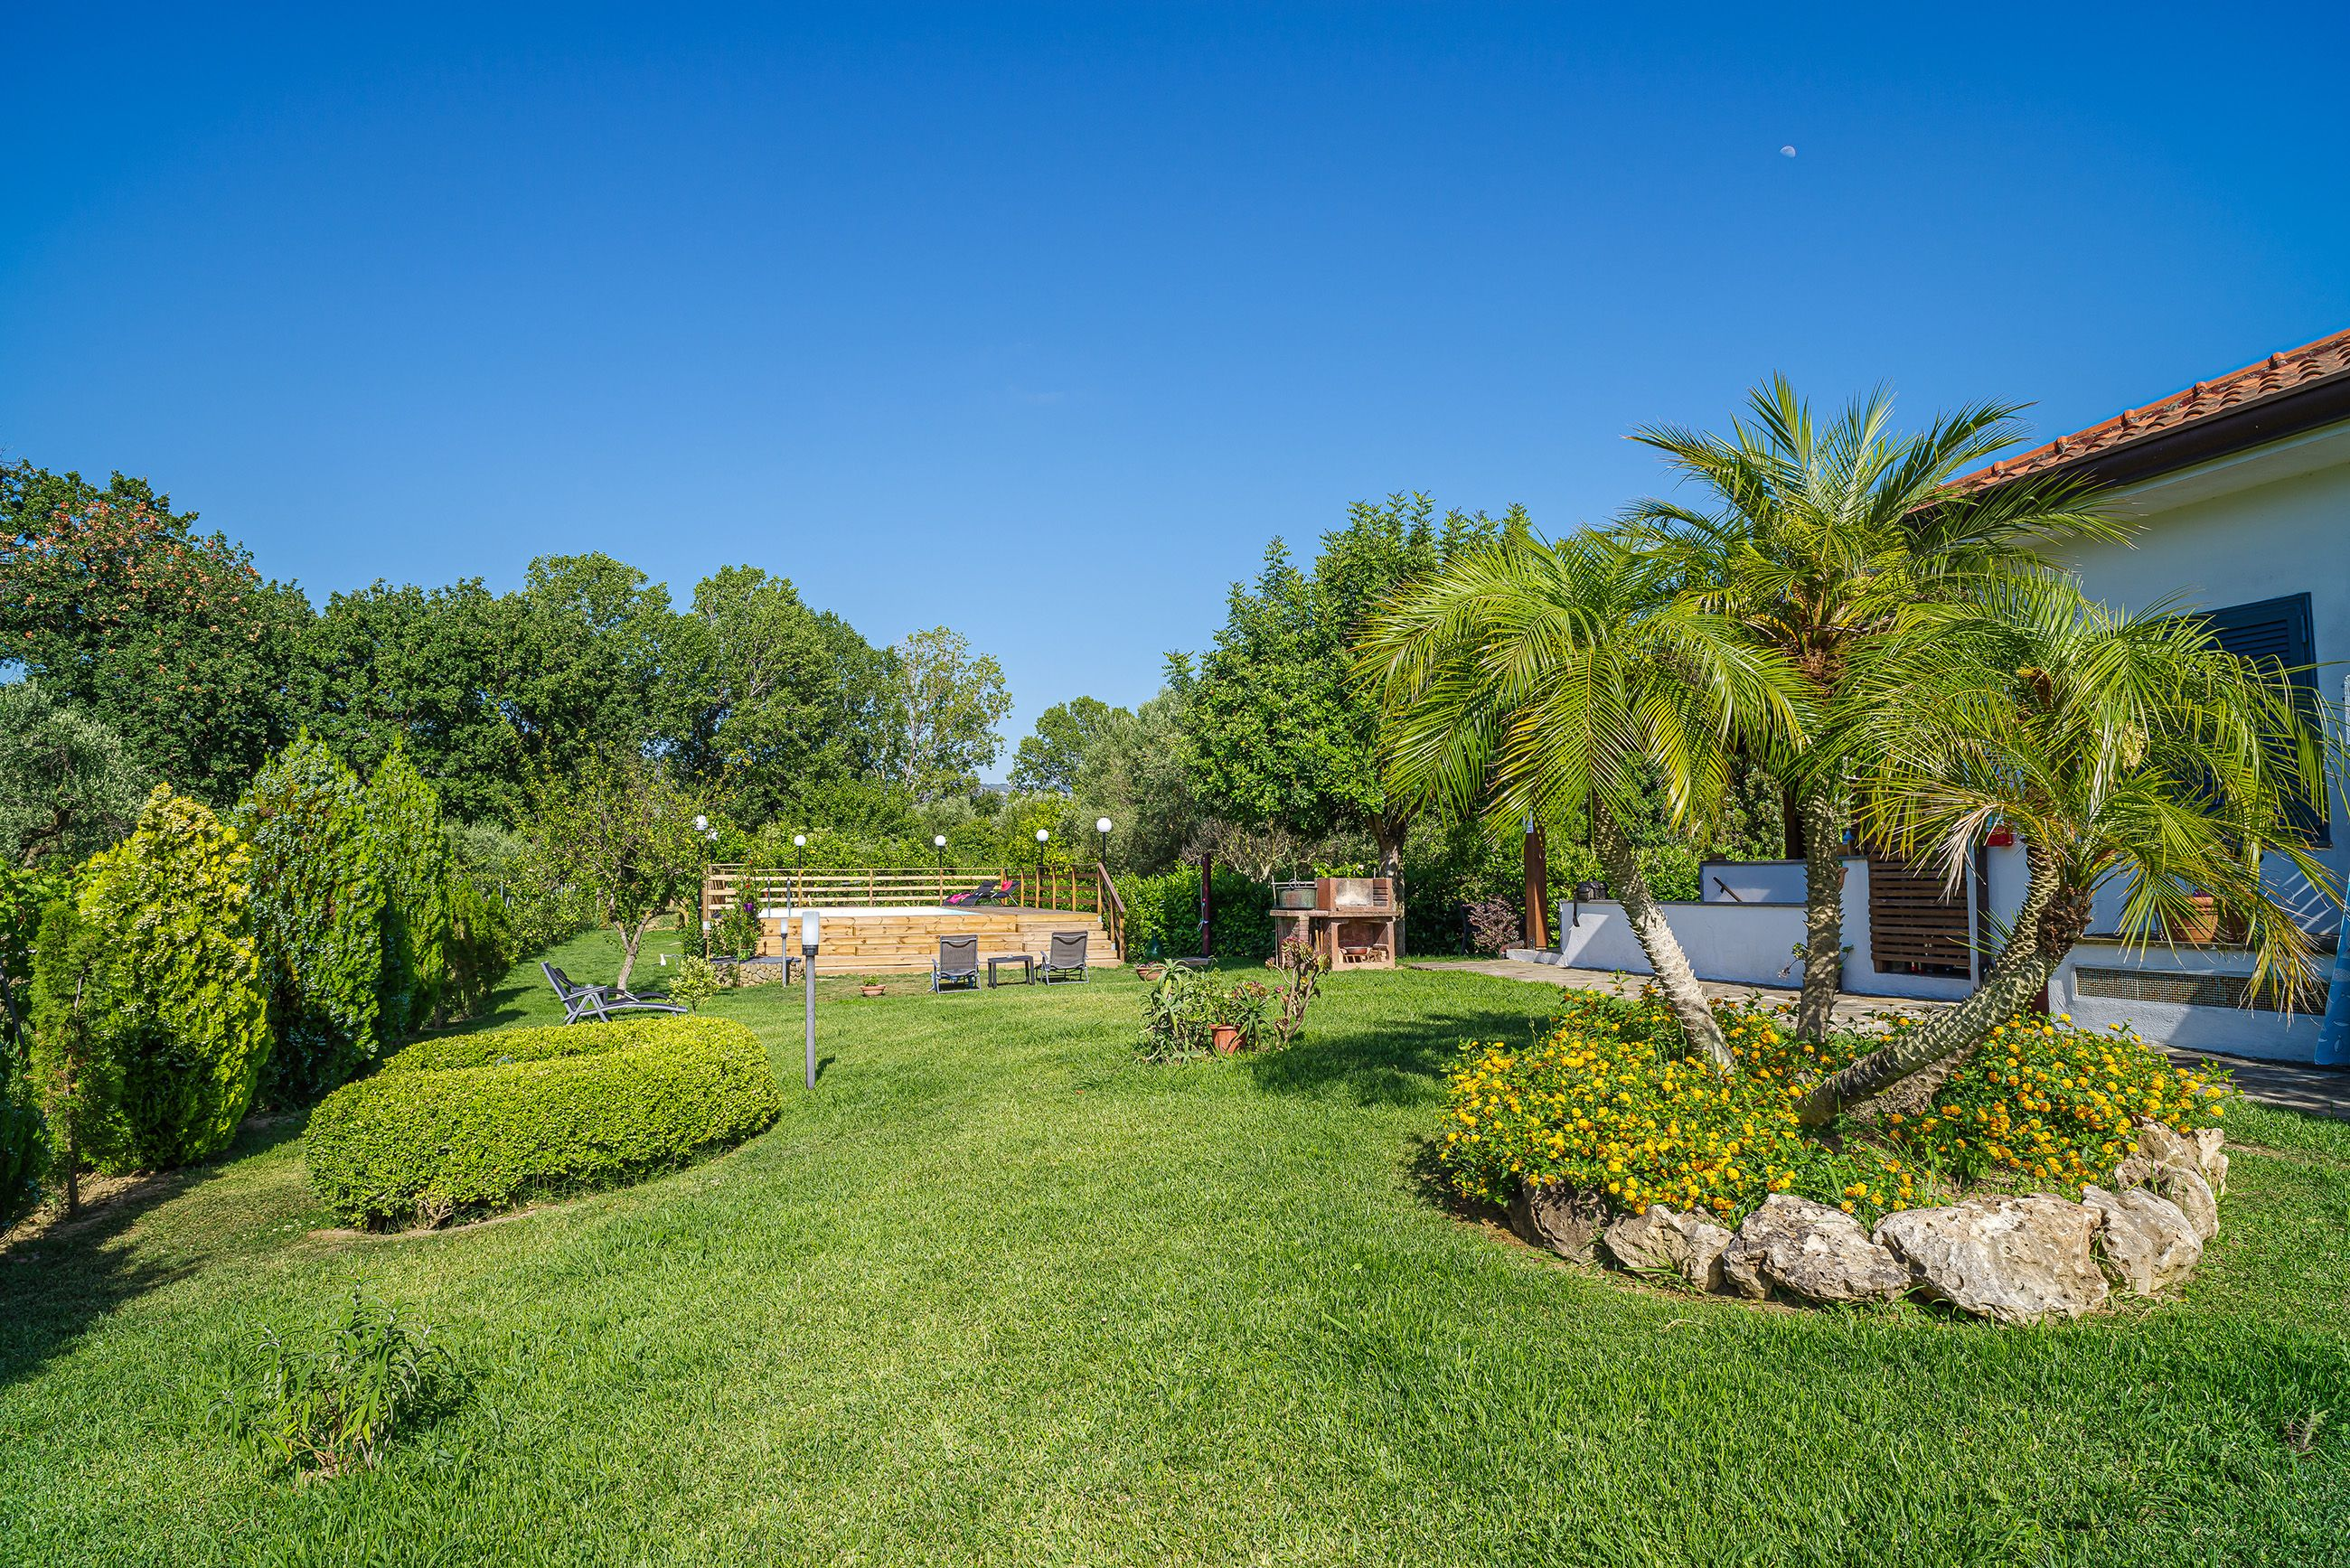 The green of B&B Verdelinfa, a suggestive place of pure serenity